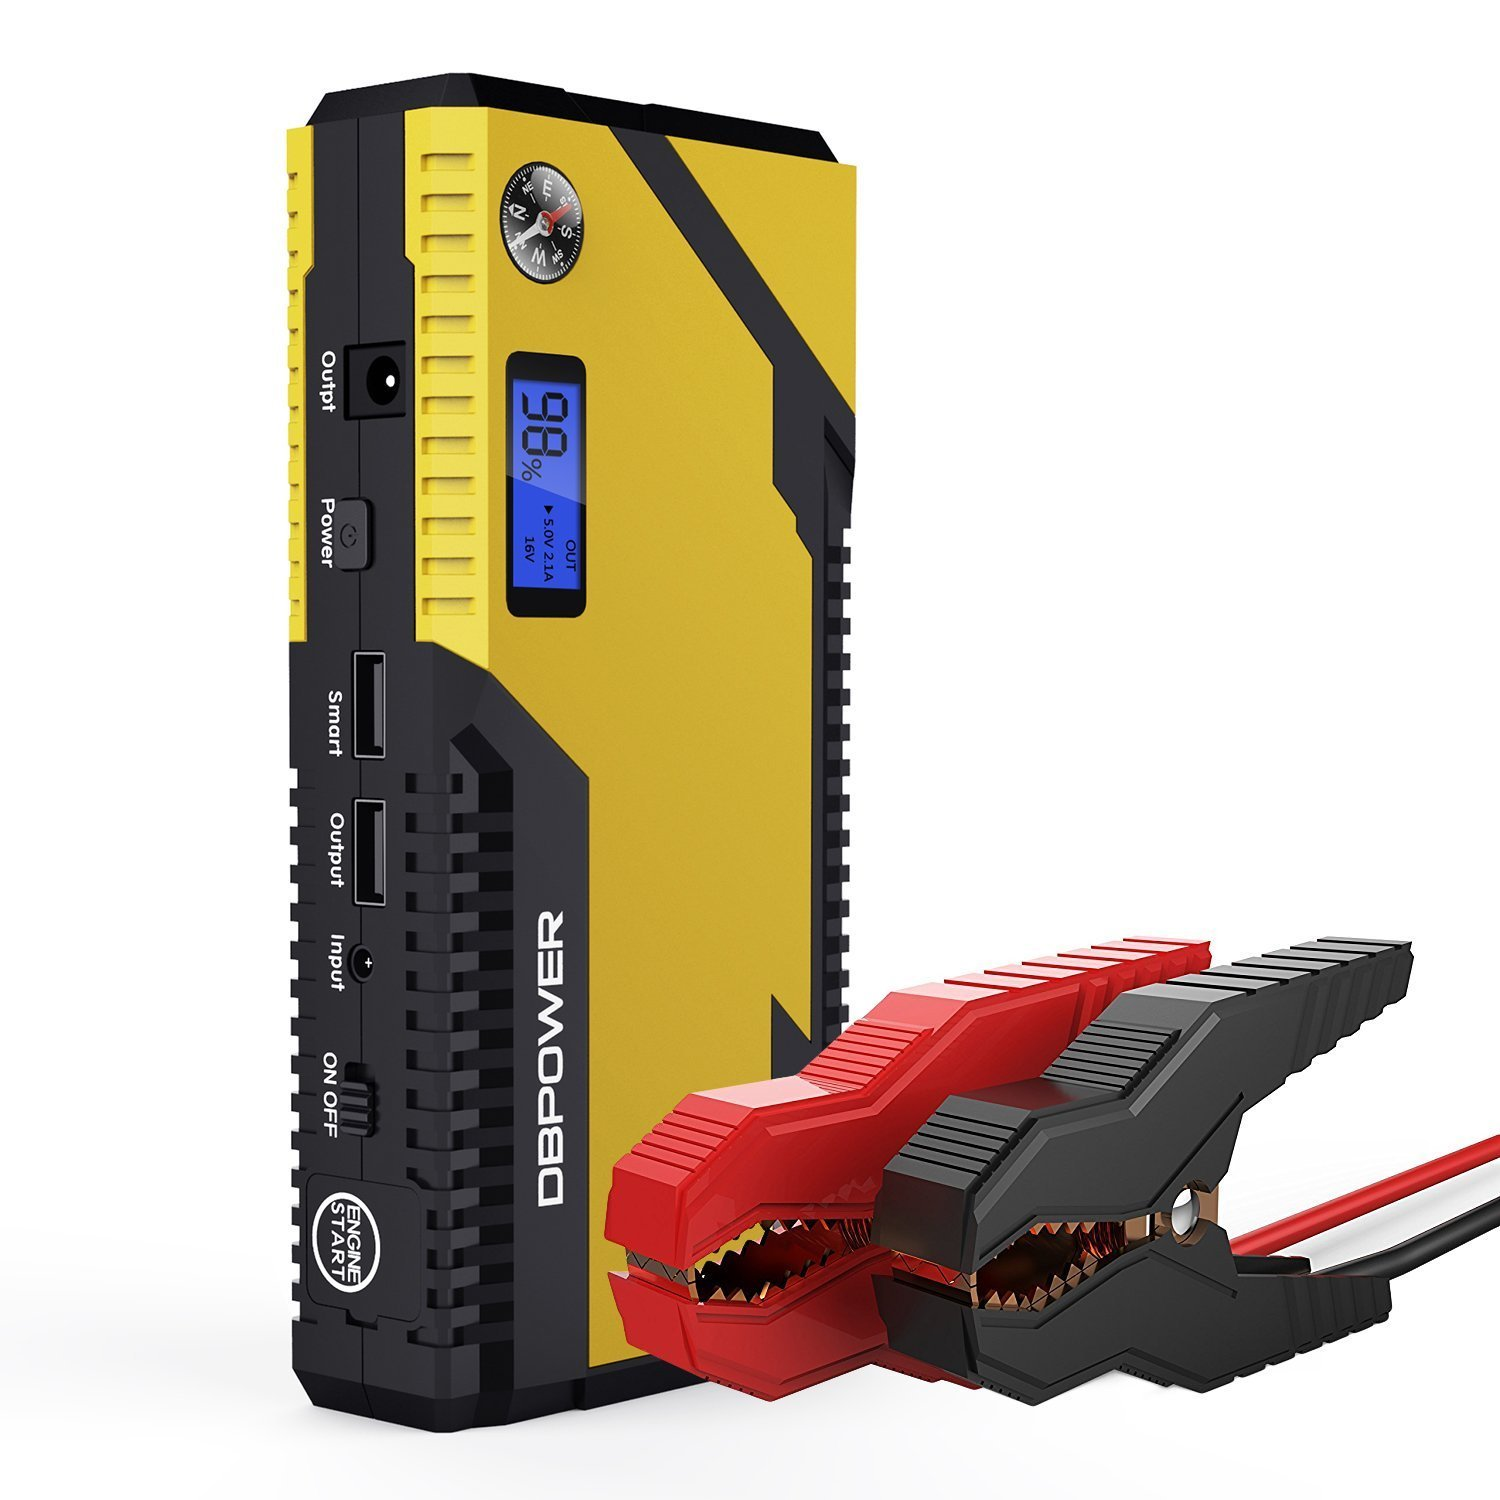 DBPOWER 500A Peak 12000mAh Portable Car Jump Starter Auto Battery Booster, Portable Phone Charger, Smart